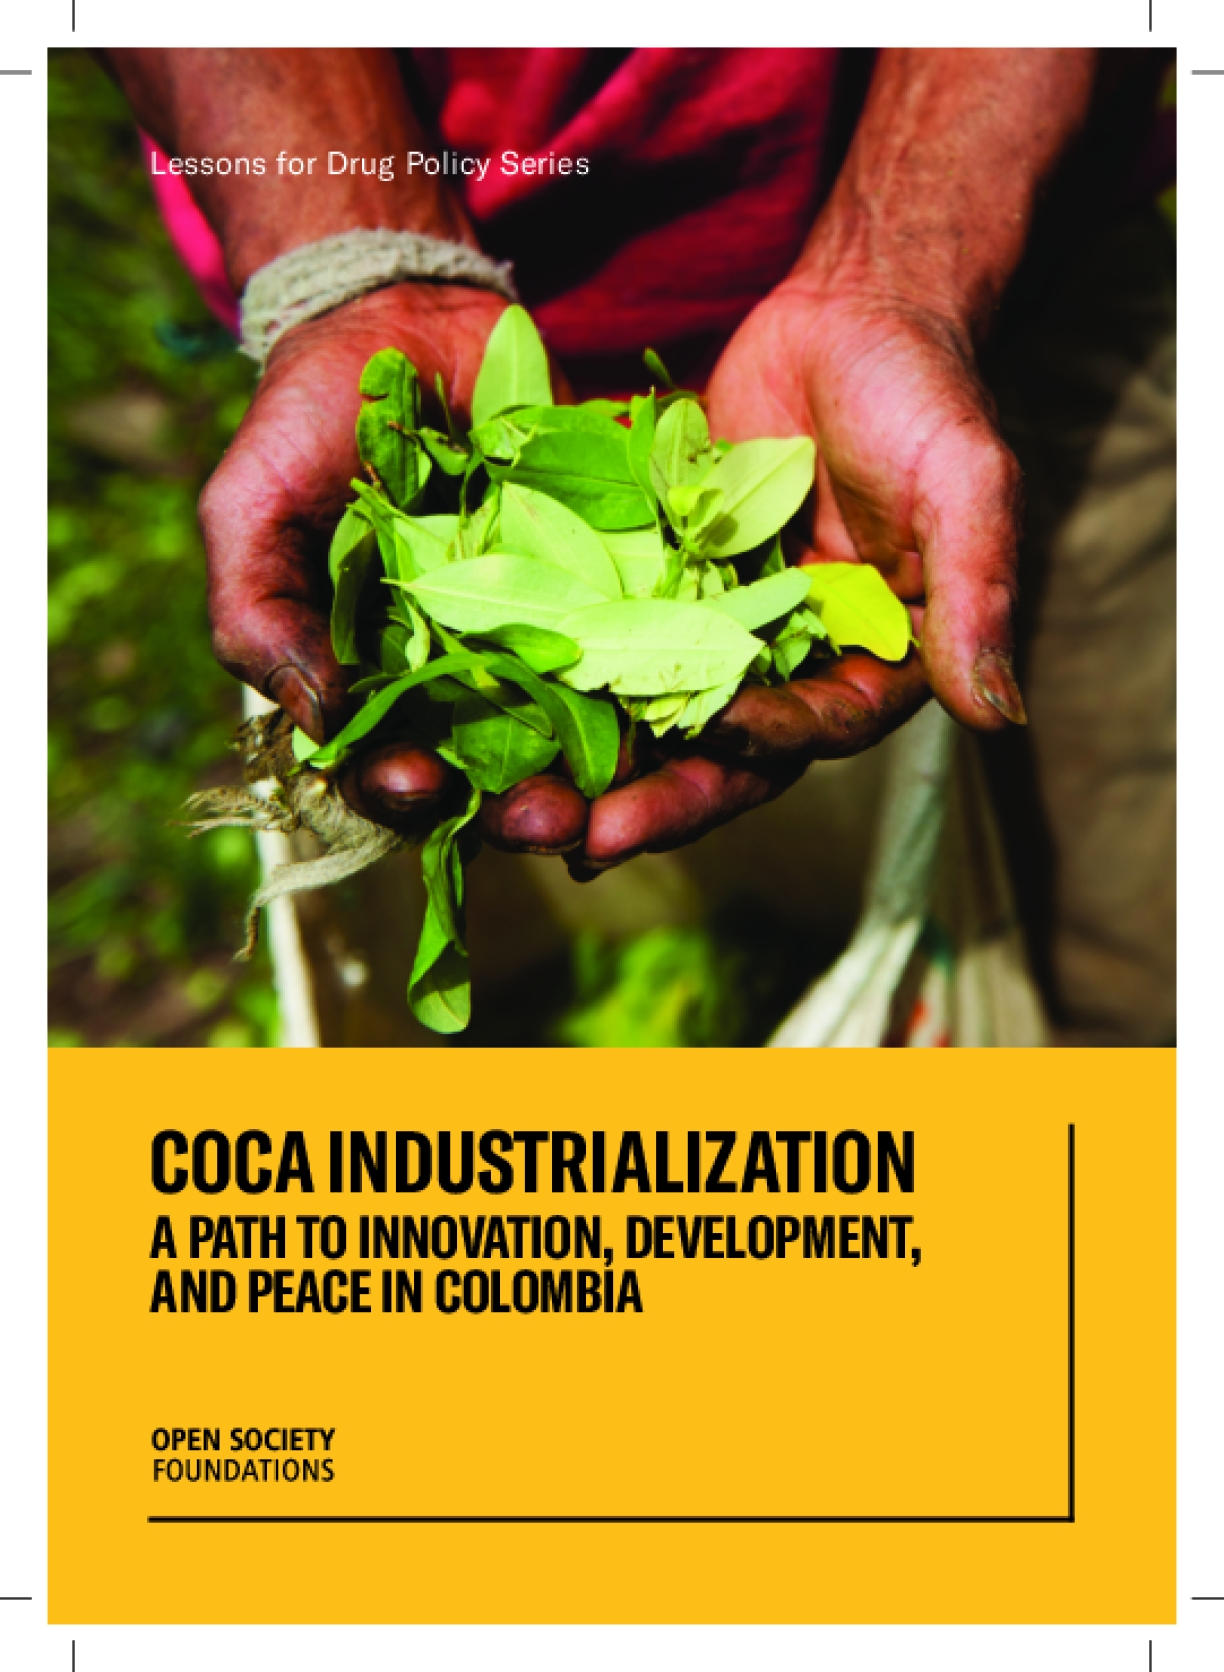 Coca Industrialization: A Path to Innovation, Development, and Peace in Colombia